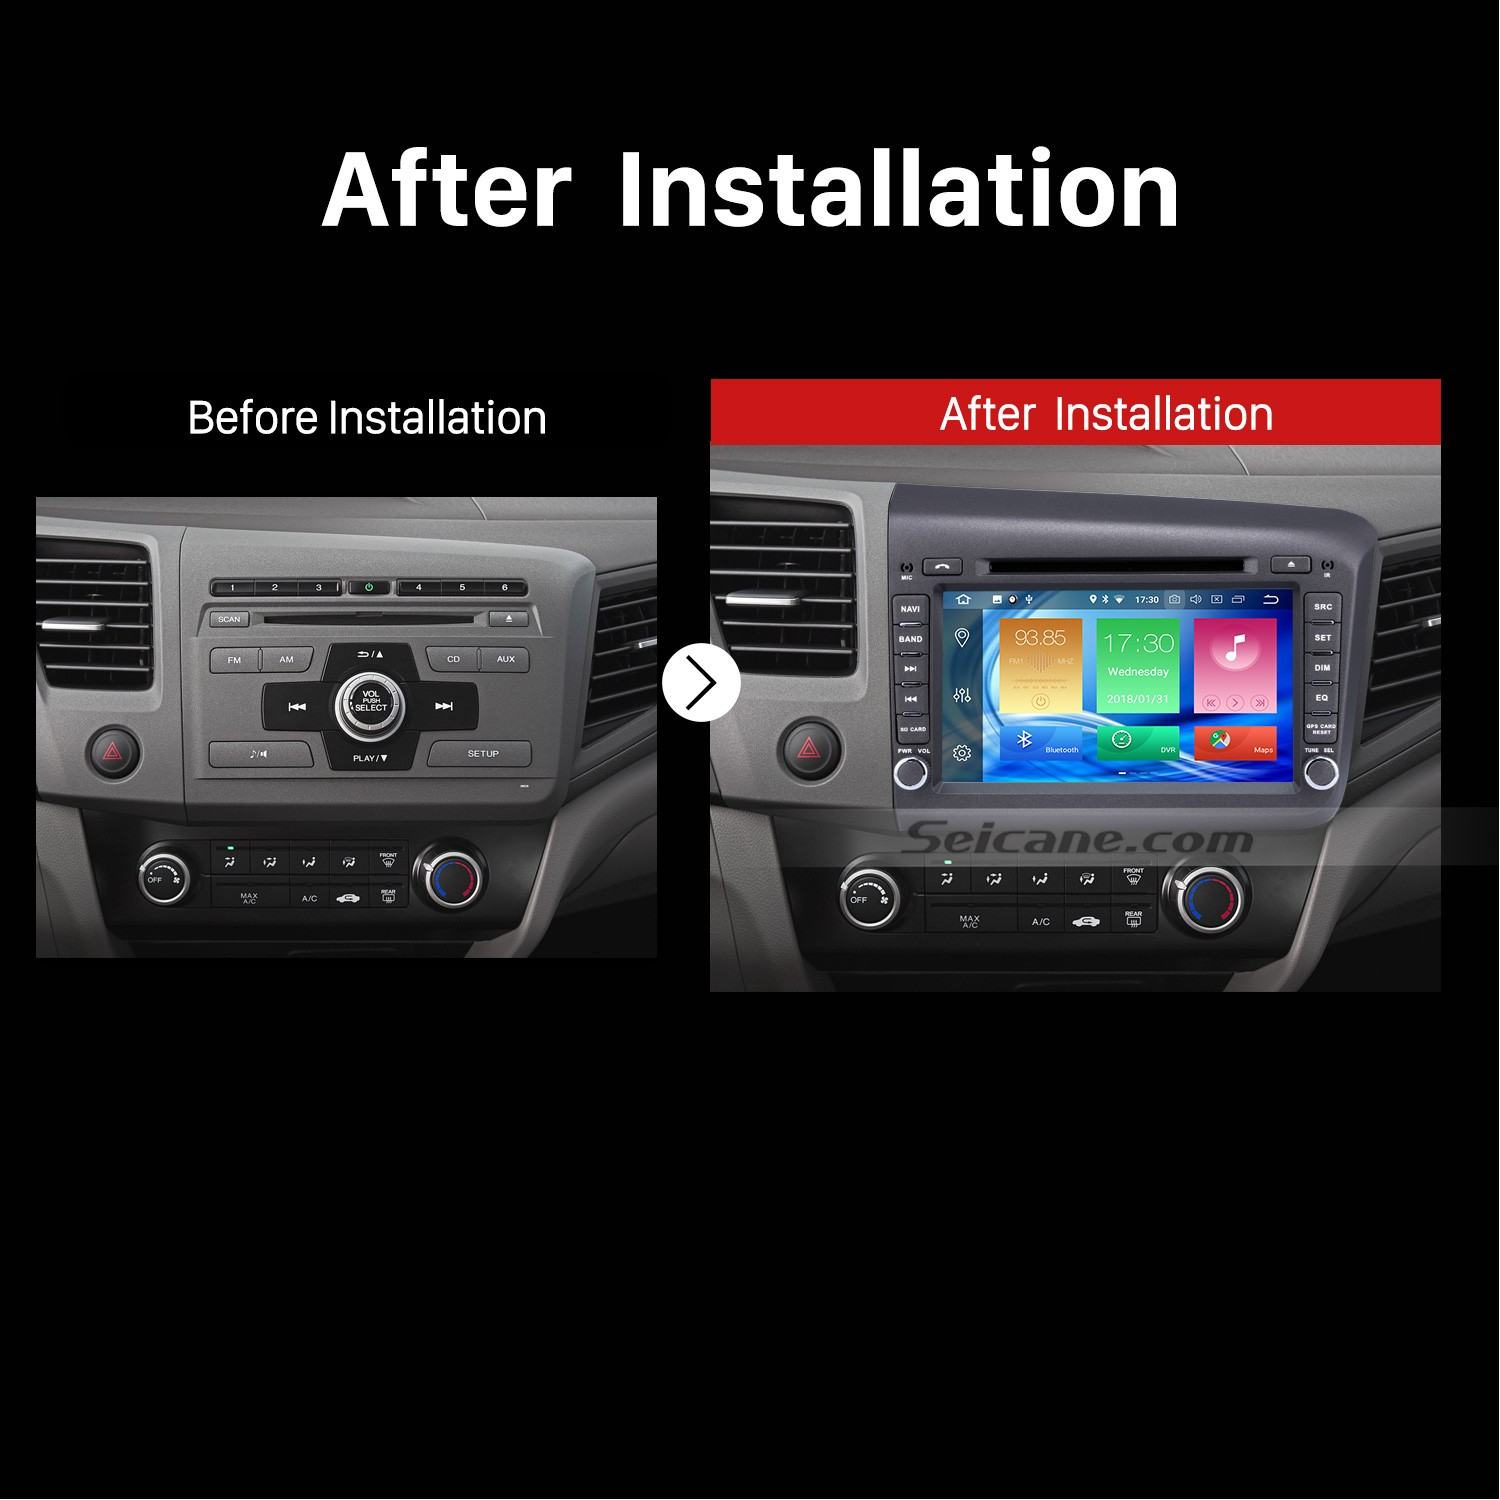 Honda Civic 2012 Navigation Wiring Reinvent Your Diagram Aftermarket Stero Harness Easy Steps To Install A Car Radio With Bluetooth Rh Carstereofaqs Com 2013 System Review